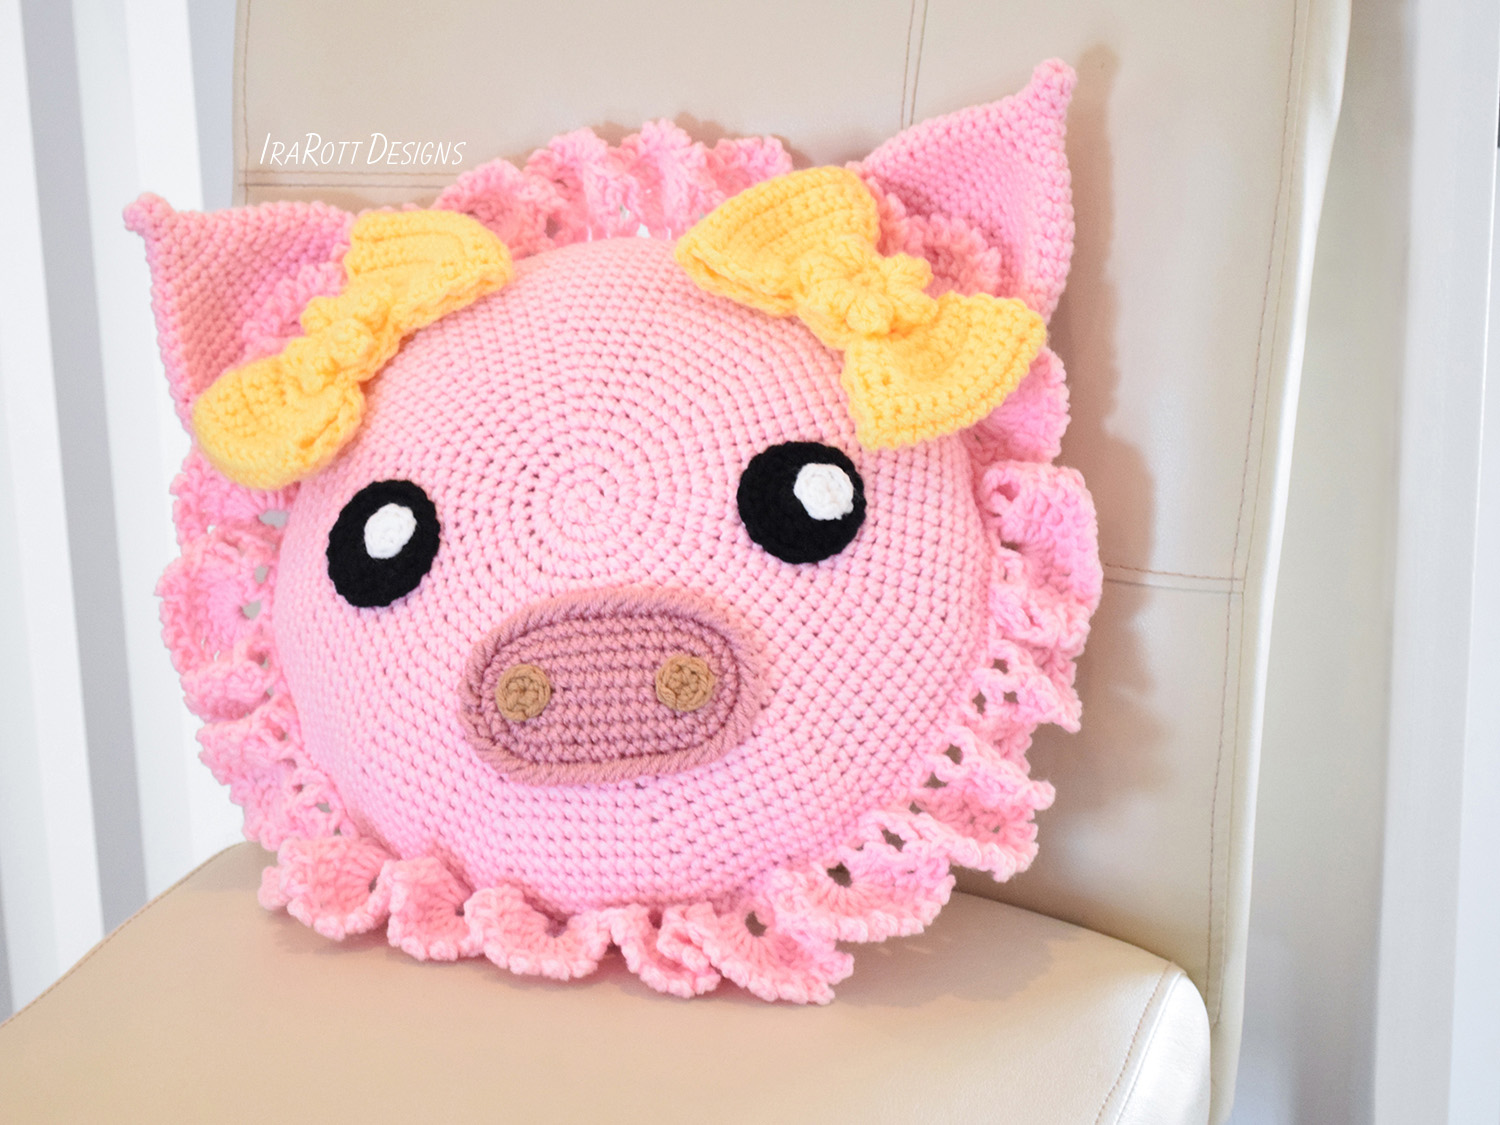 Pinky The Piggy Pillow PDF Crochet Pattern - IraRott Inc.